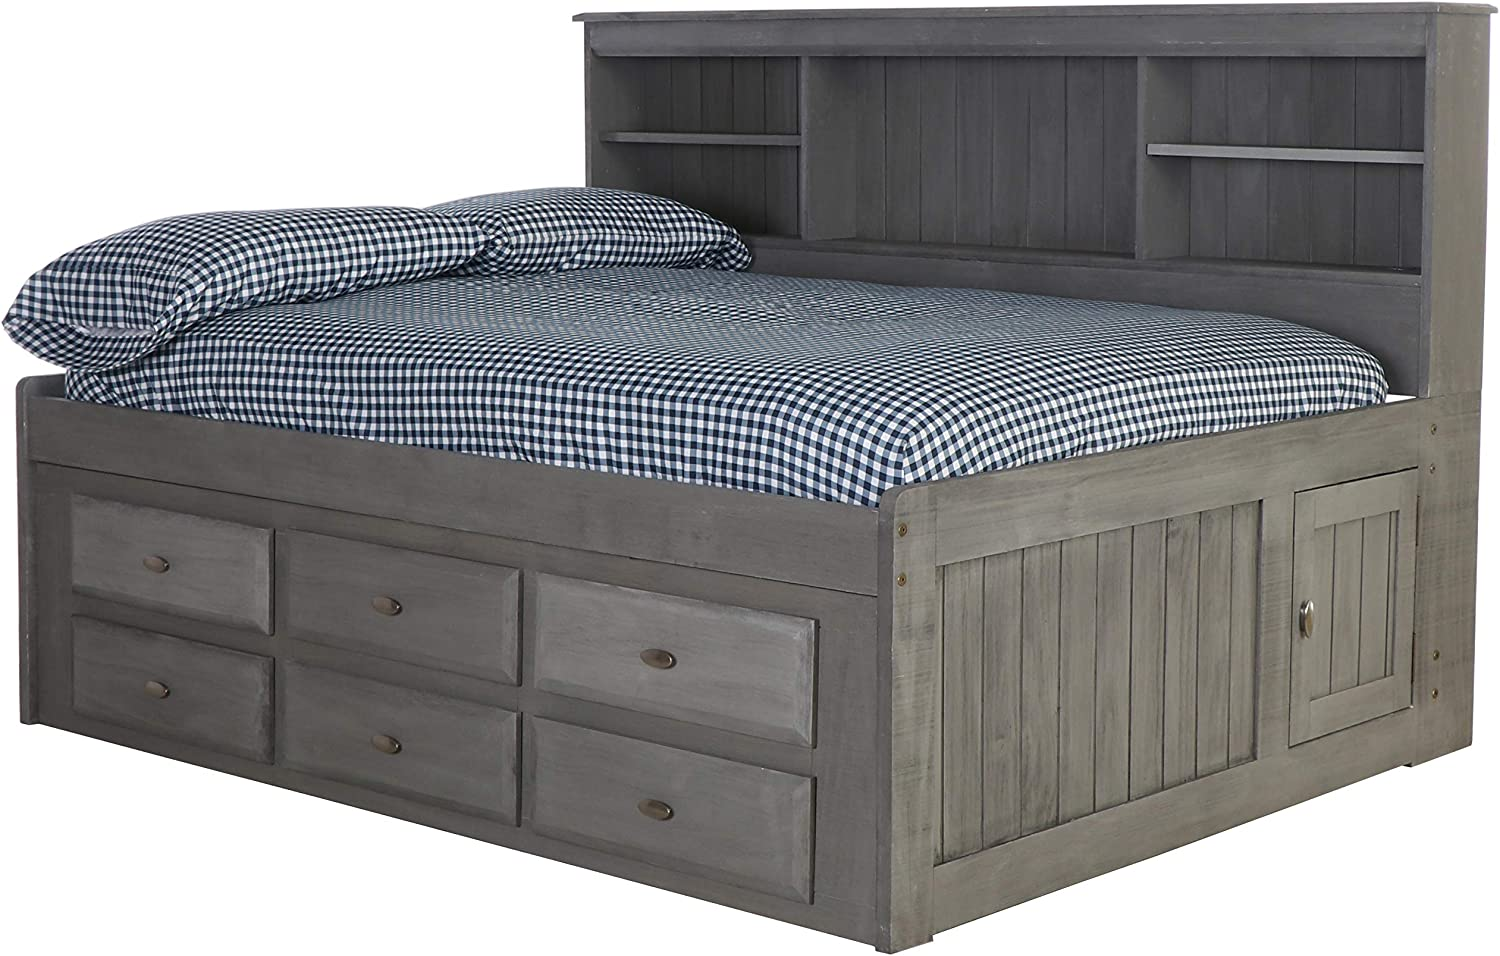 Discovery World Furniture Full Captain Day Bed with 6 Drawers - Charcoal